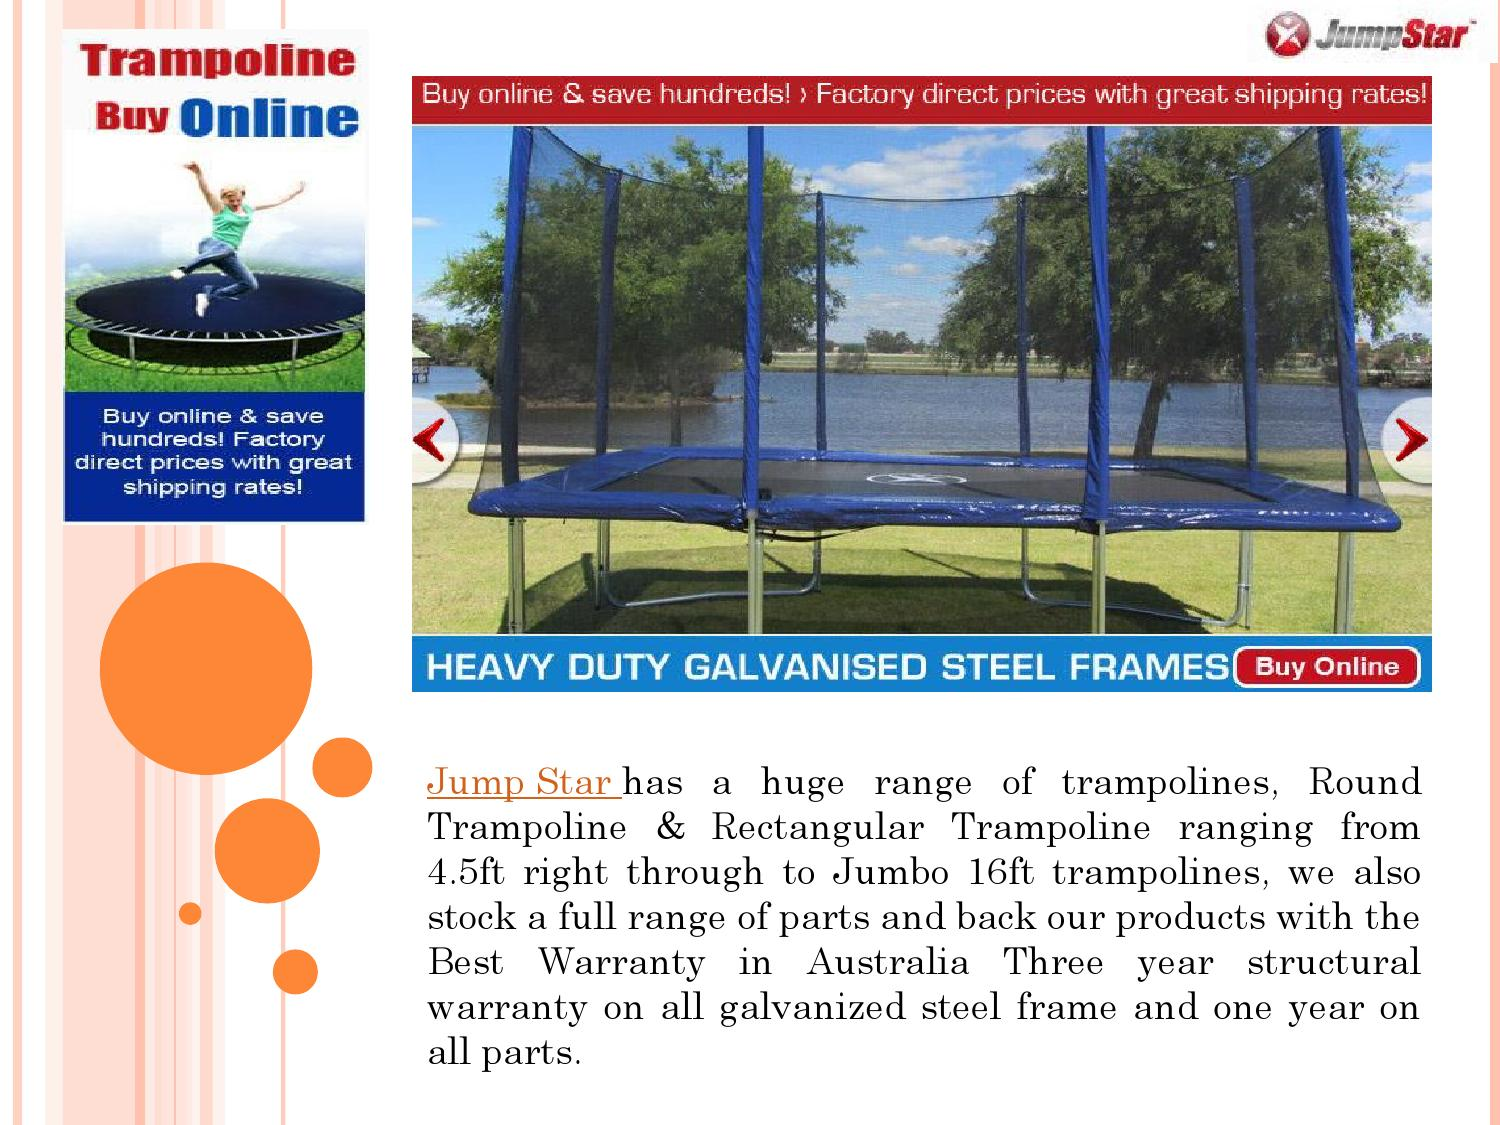 Buy Trampoline Brisbane Trampoline Trampoline Sale Sale Trampolines